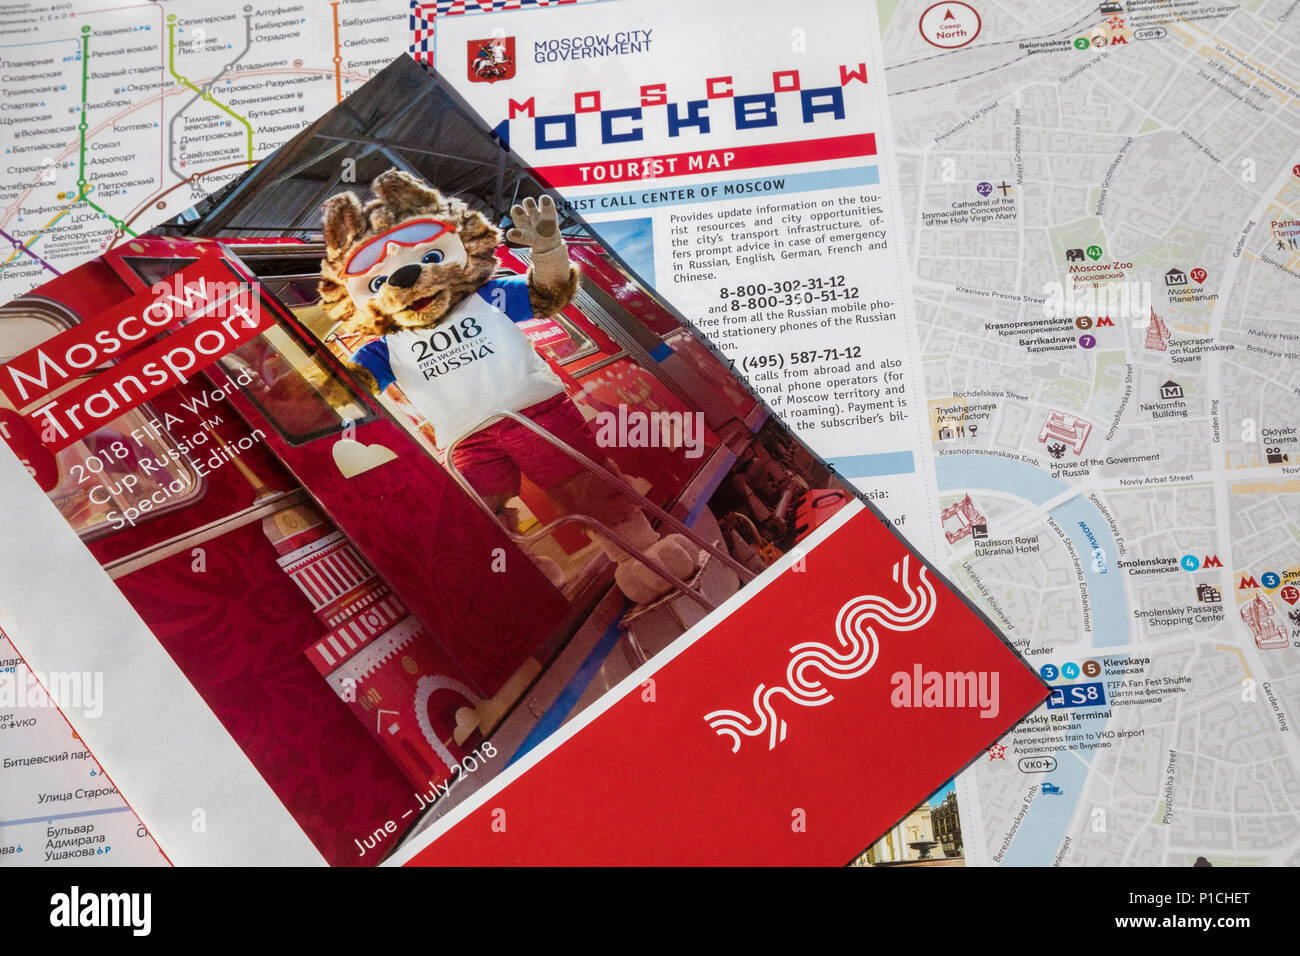 Moscow, Russia. 11th June, 2018. Travel Guide and Travel Information for visitors of the FIFA World Cup 2018 at outdoors information desk in Moscow, Russia Credit: Nikolay Vinokurov/Alamy Live News - Stock Image